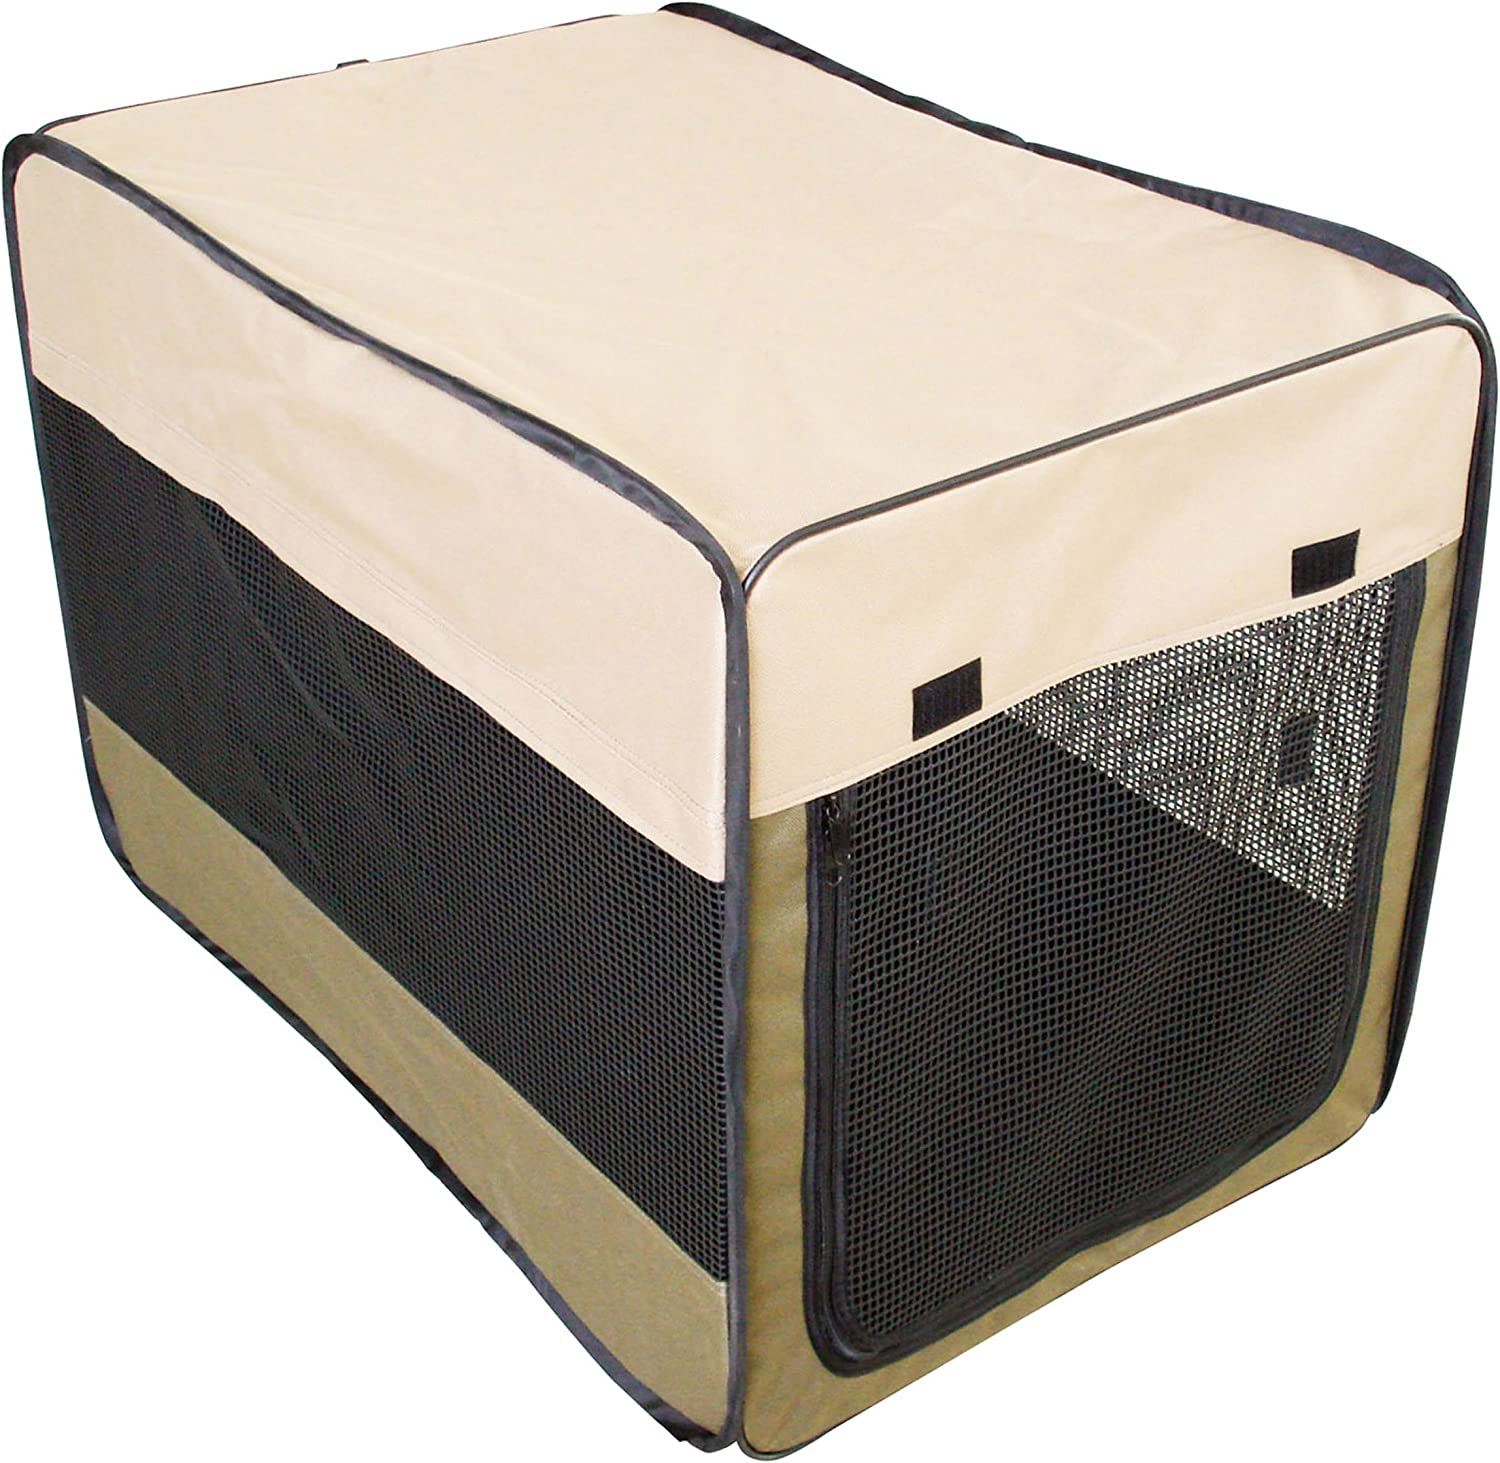 Sportsman SSPPK42 Portable Large Dog Kennel